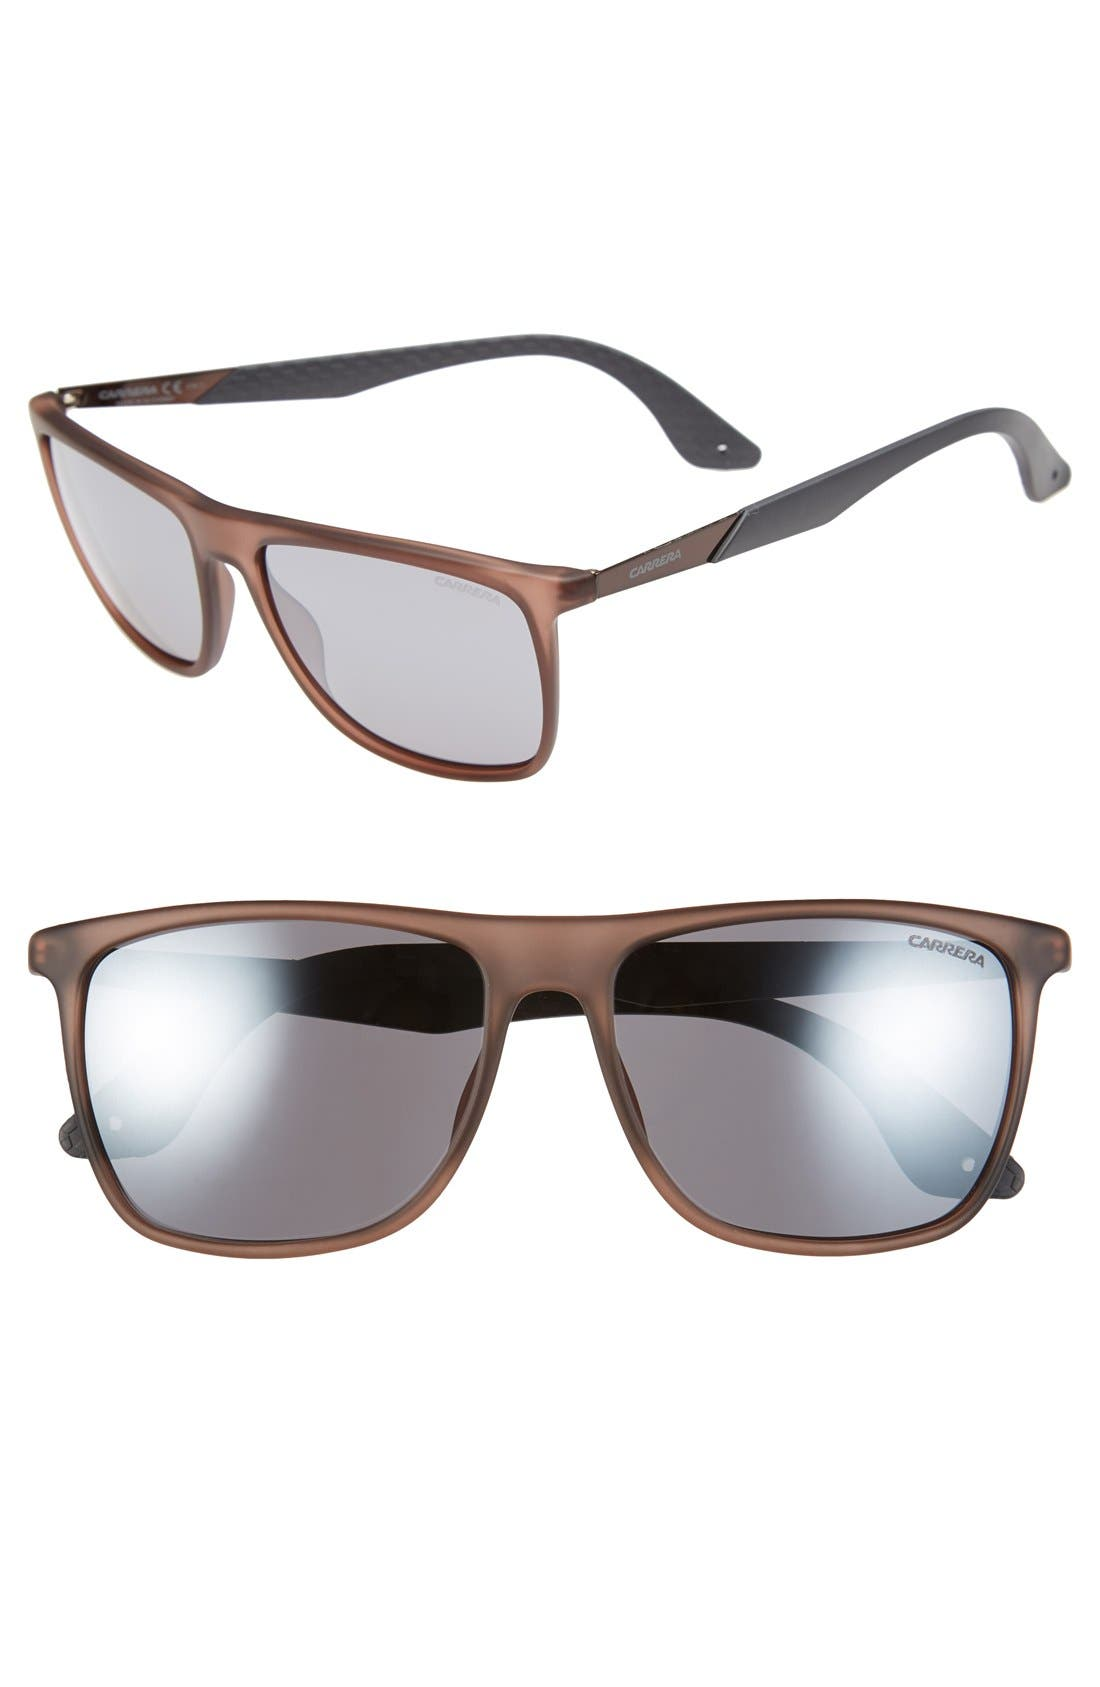 CARRERA EYEWEAR 56mm Retro Sunglasses